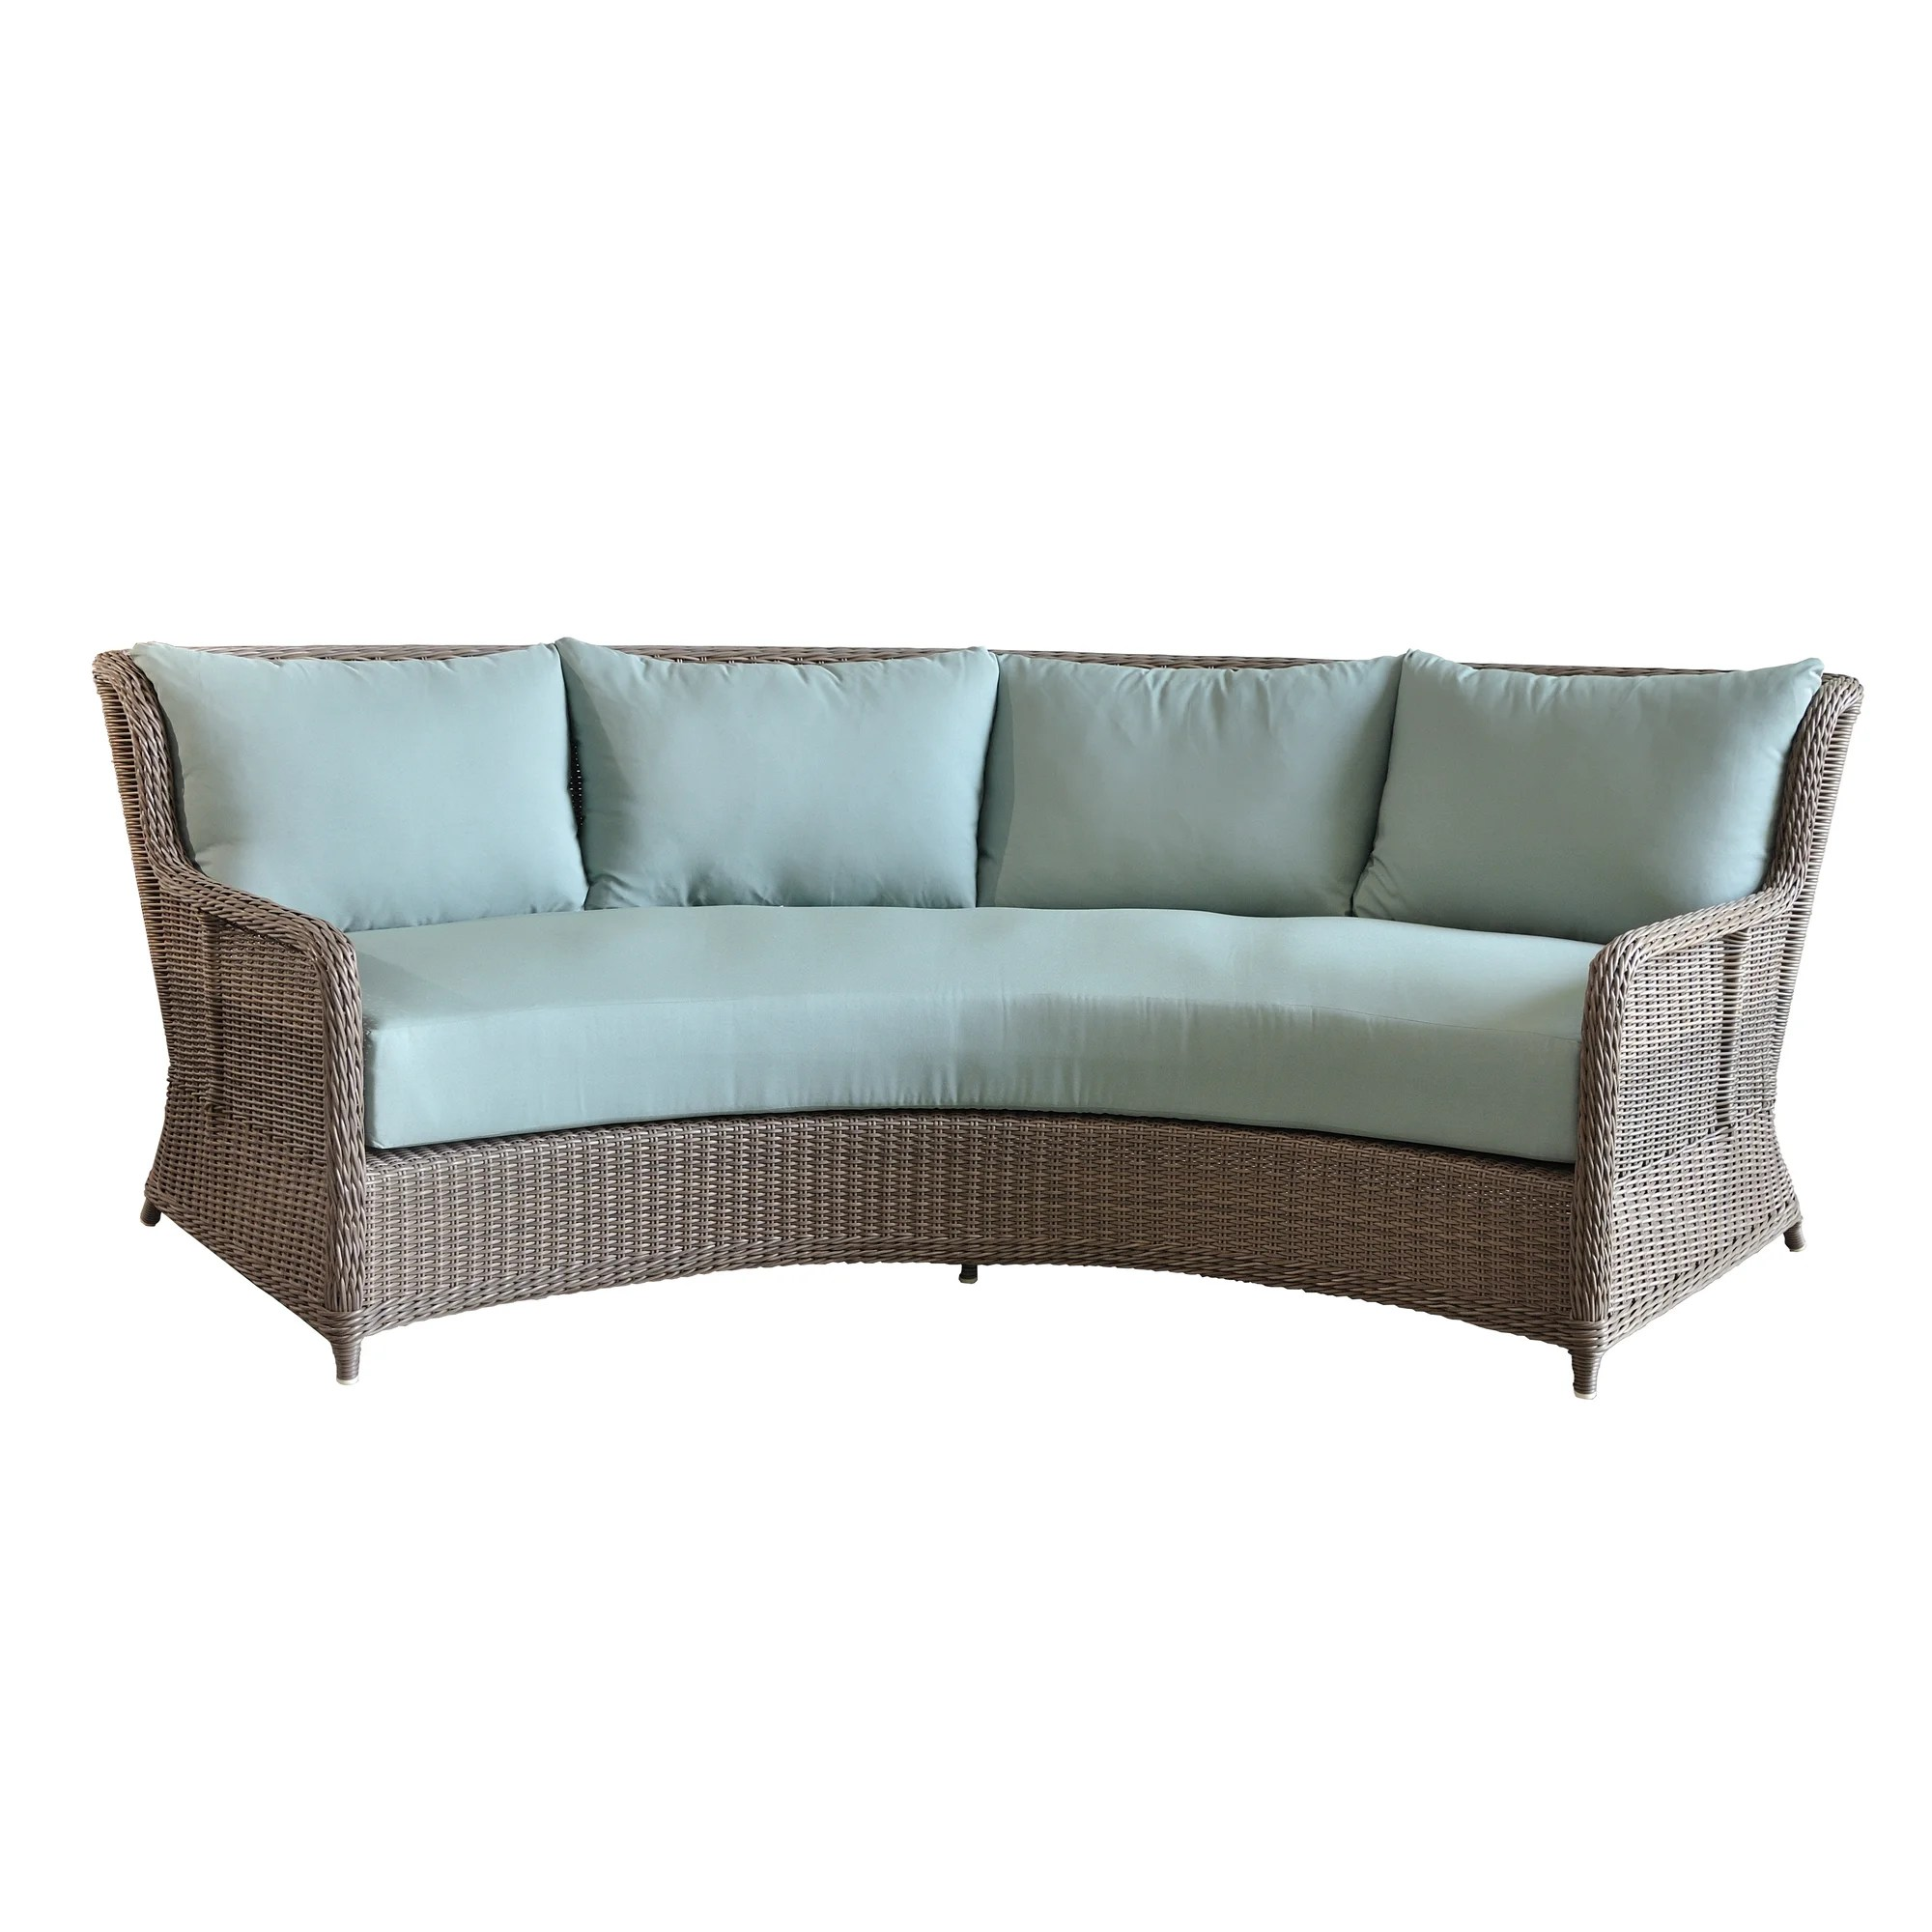 Traditional Curved Sofa Aecagra Org